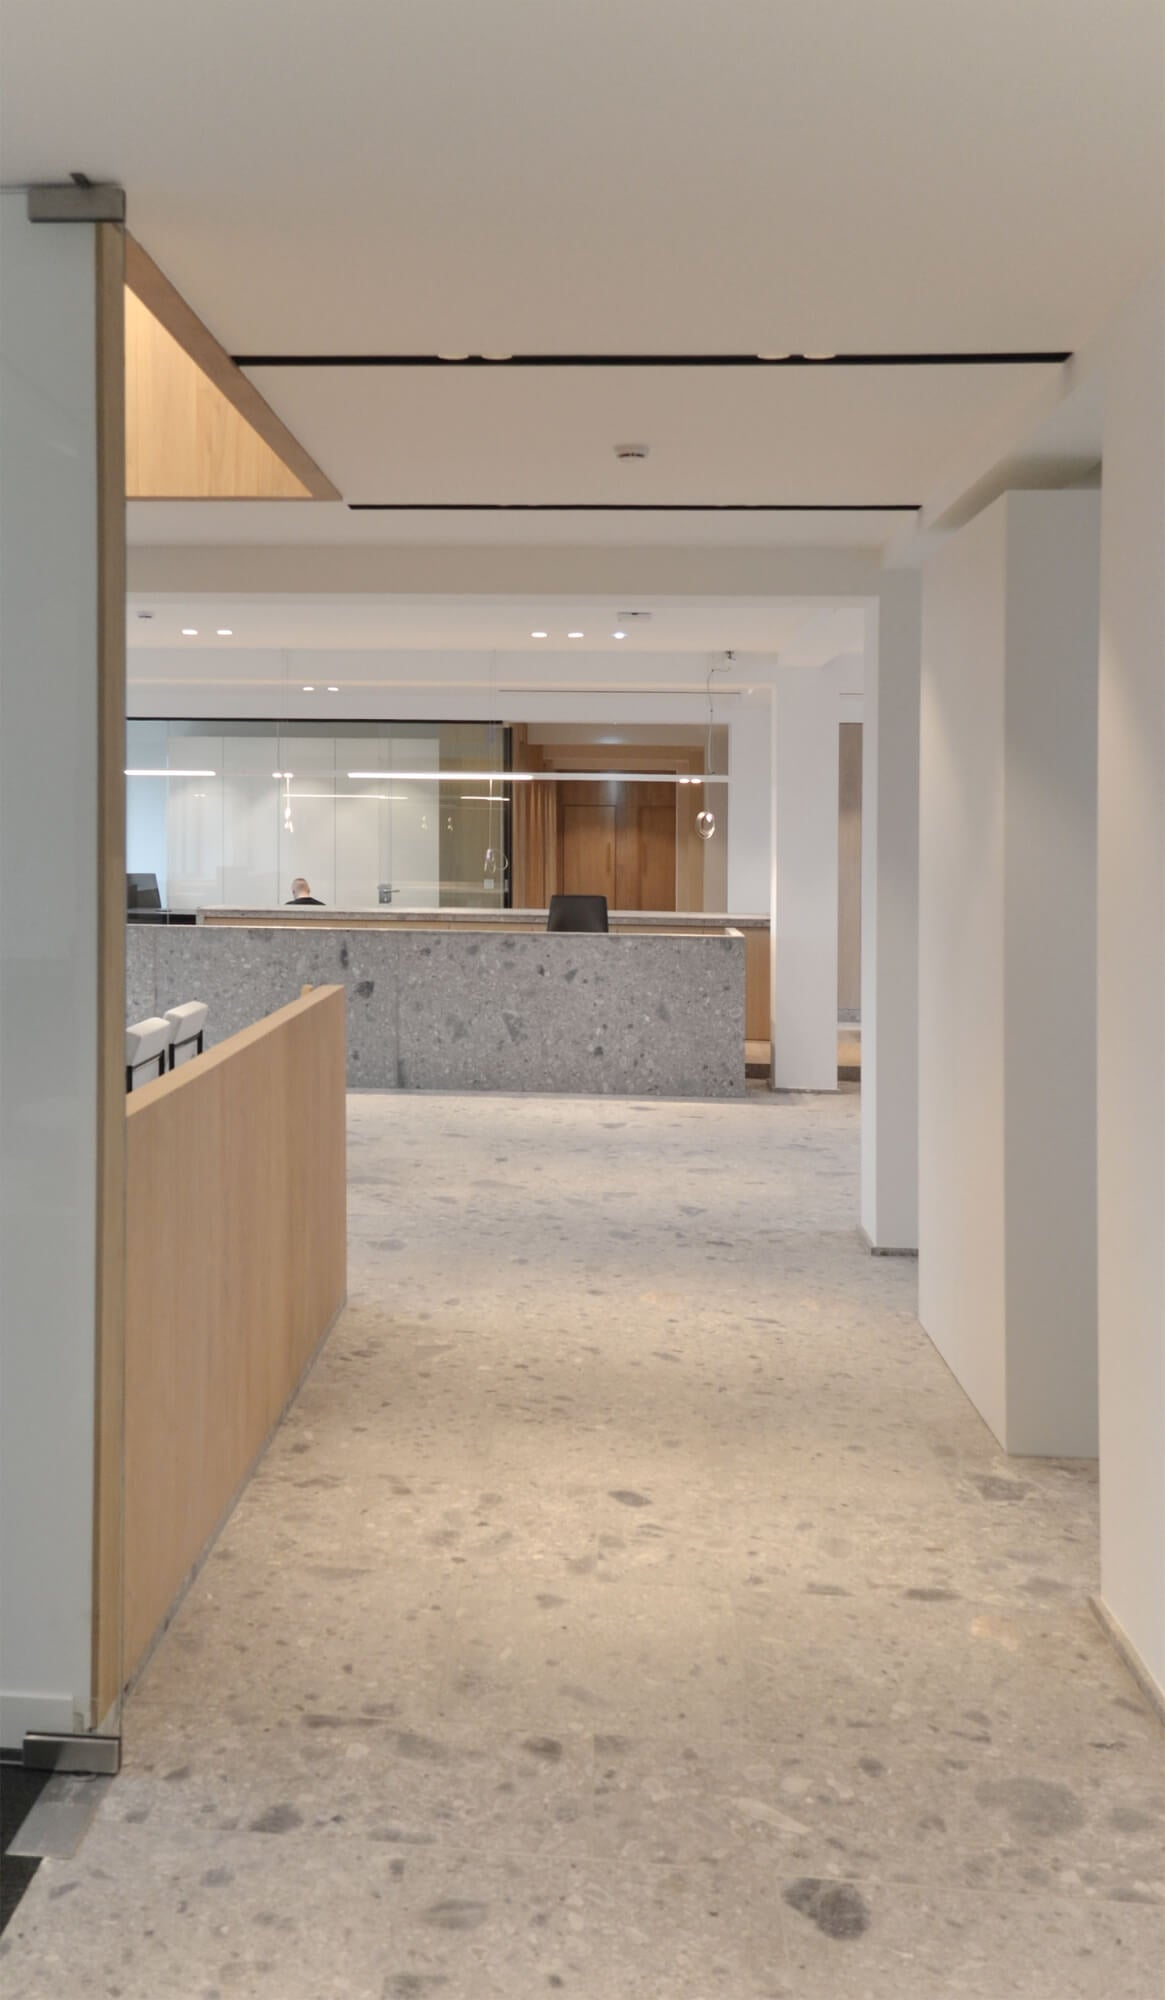 Office building with concrete flooring and wood cubicles.